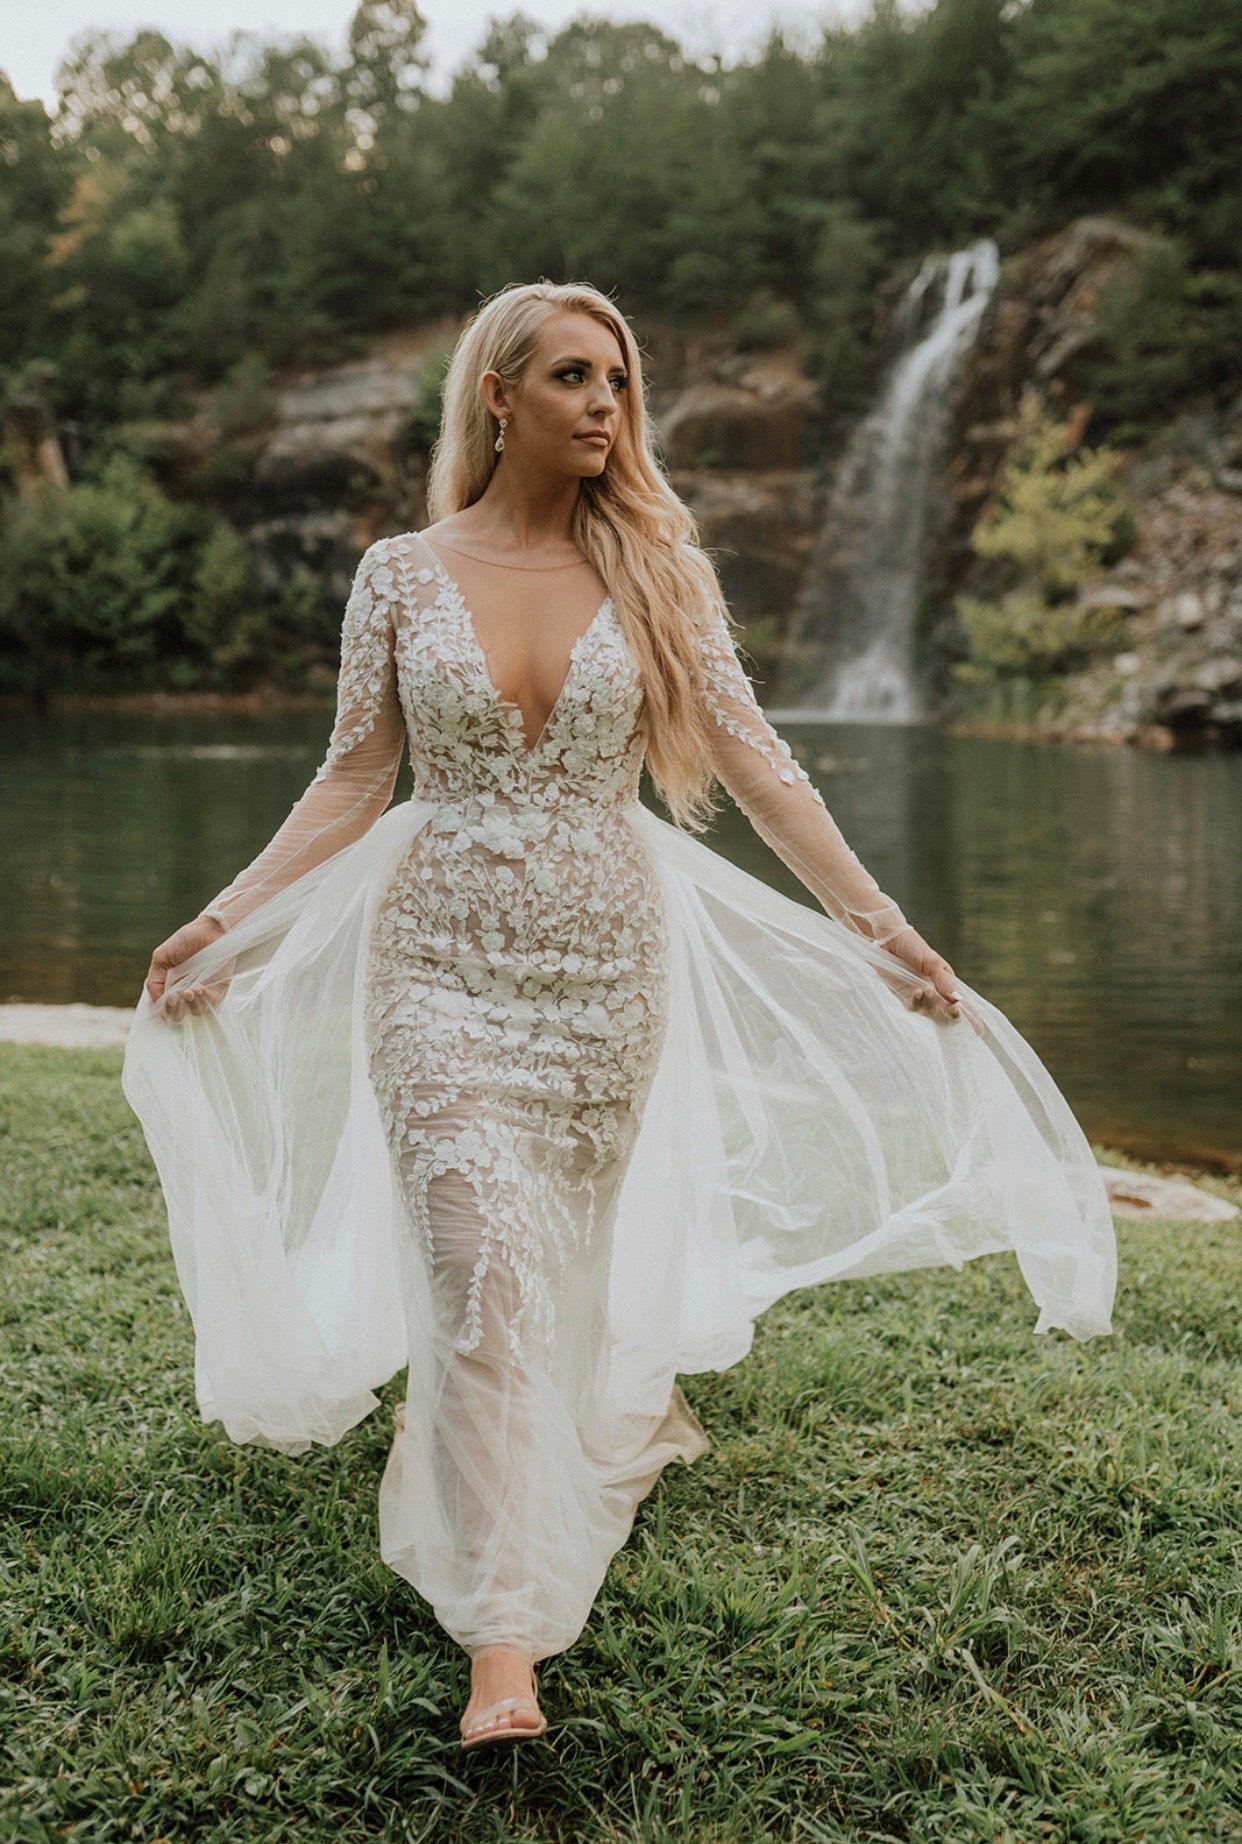 Embroidered Floral Illusion Bodysuit Wedding Dress David S Bridal In 2021 Davids Bridal Wedding Dresses Illusion Wedding Dress Wedding Dresses [ 1844 x 1242 Pixel ]